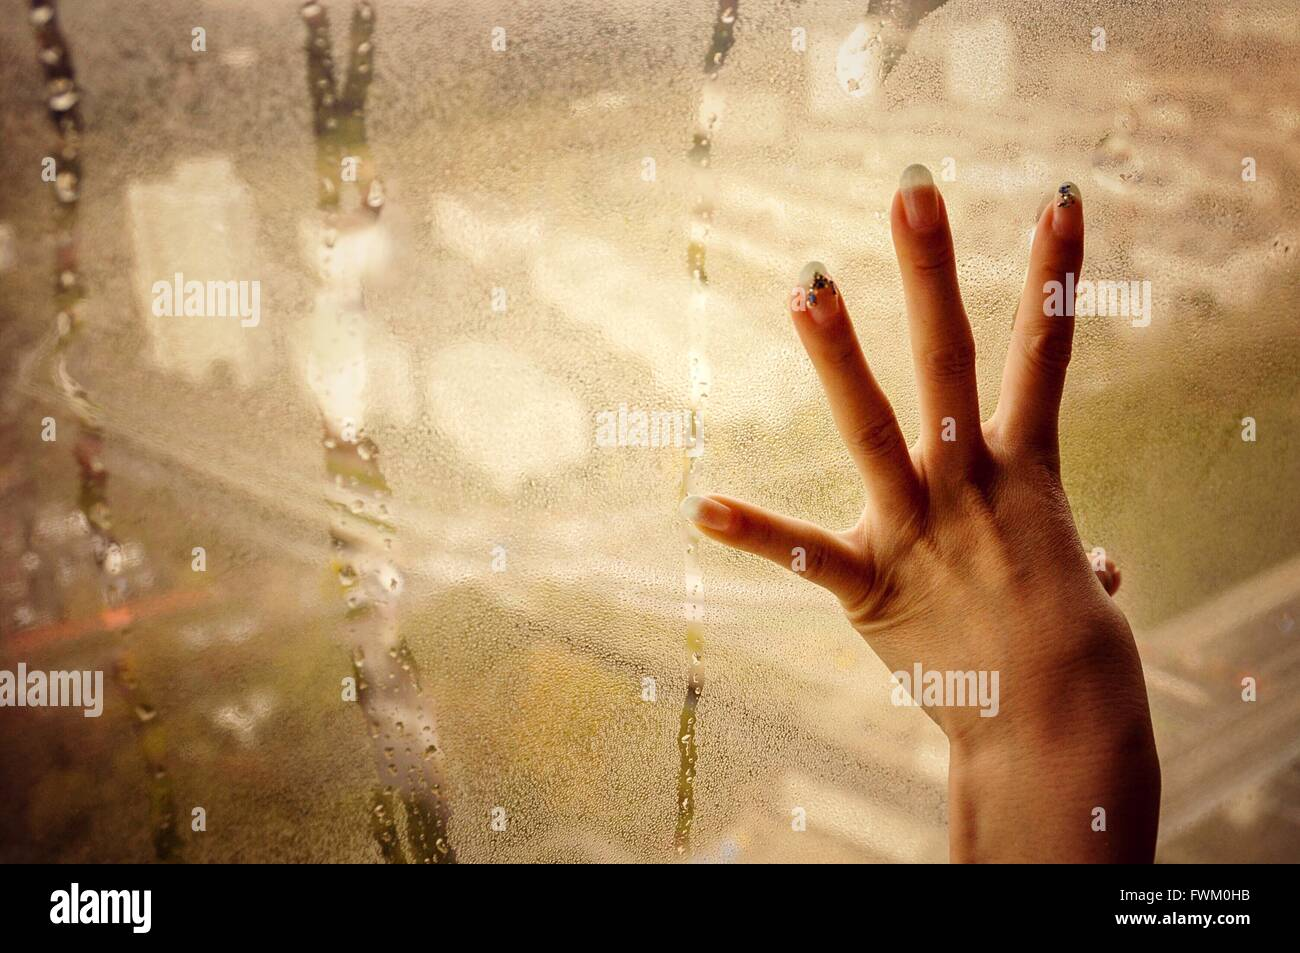 Cropped Hand On Condensed Glass - Stock Image